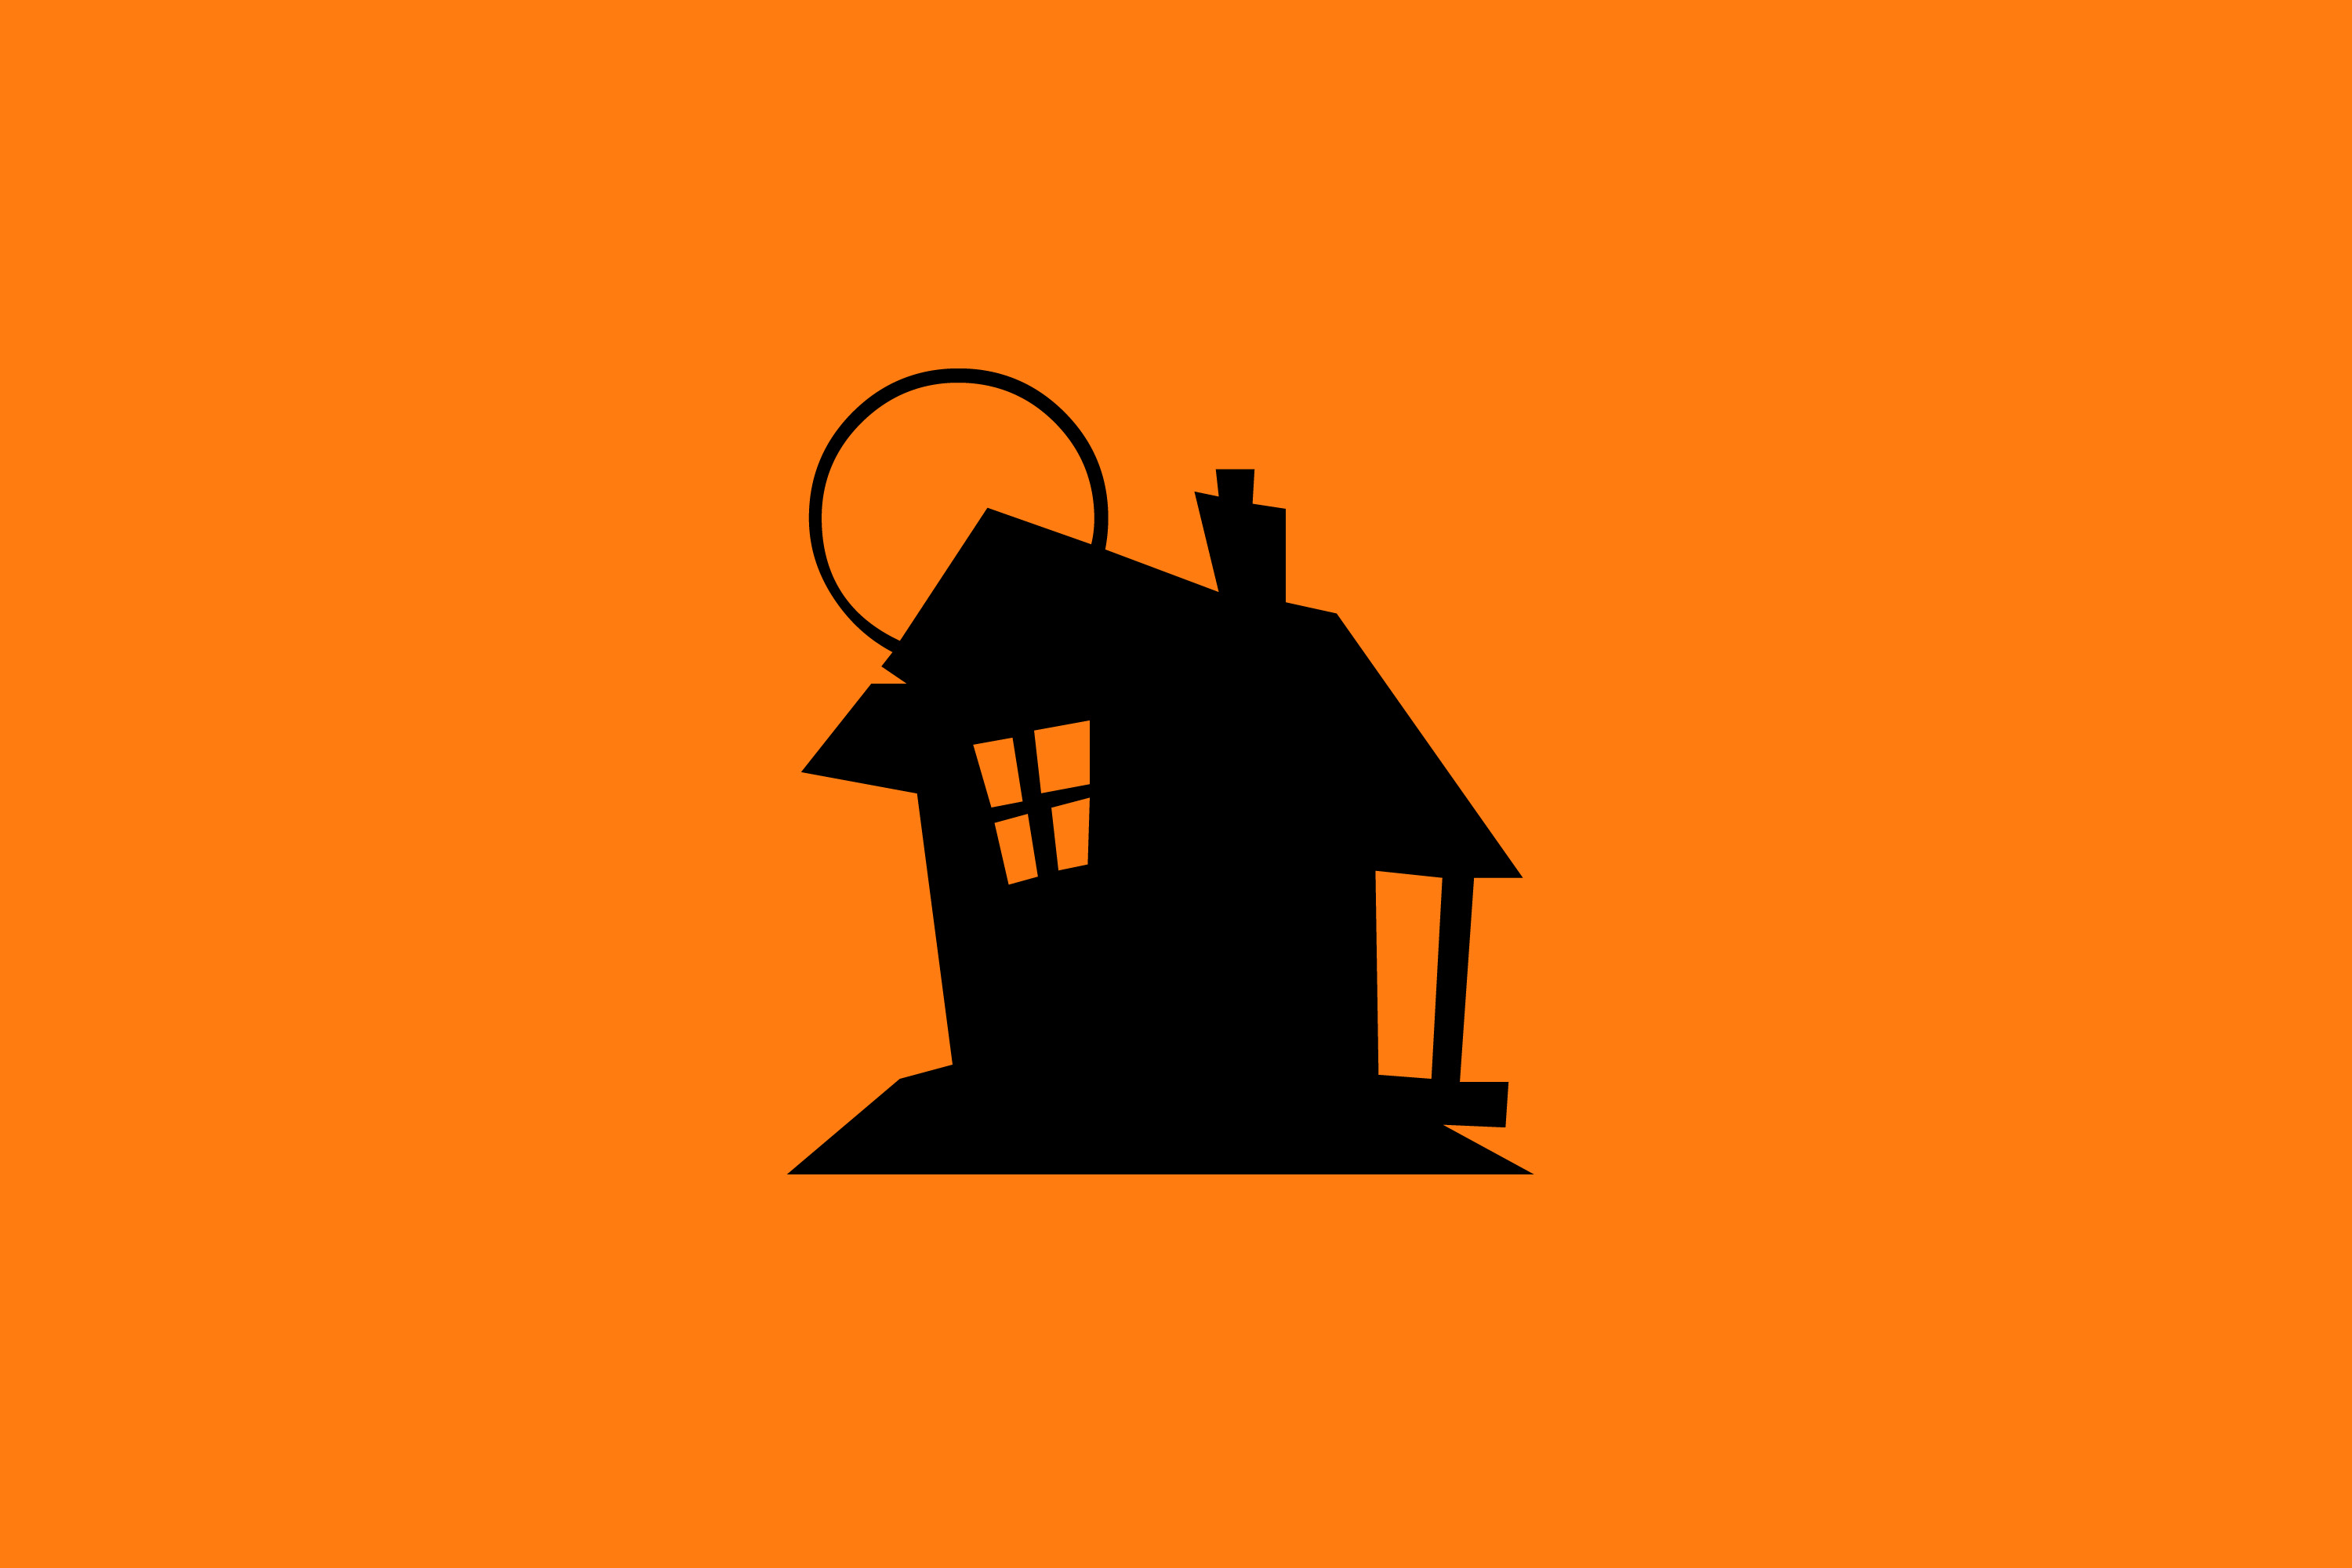 Clipart Images House Image Of Haunted House Creepyhalloweenimages